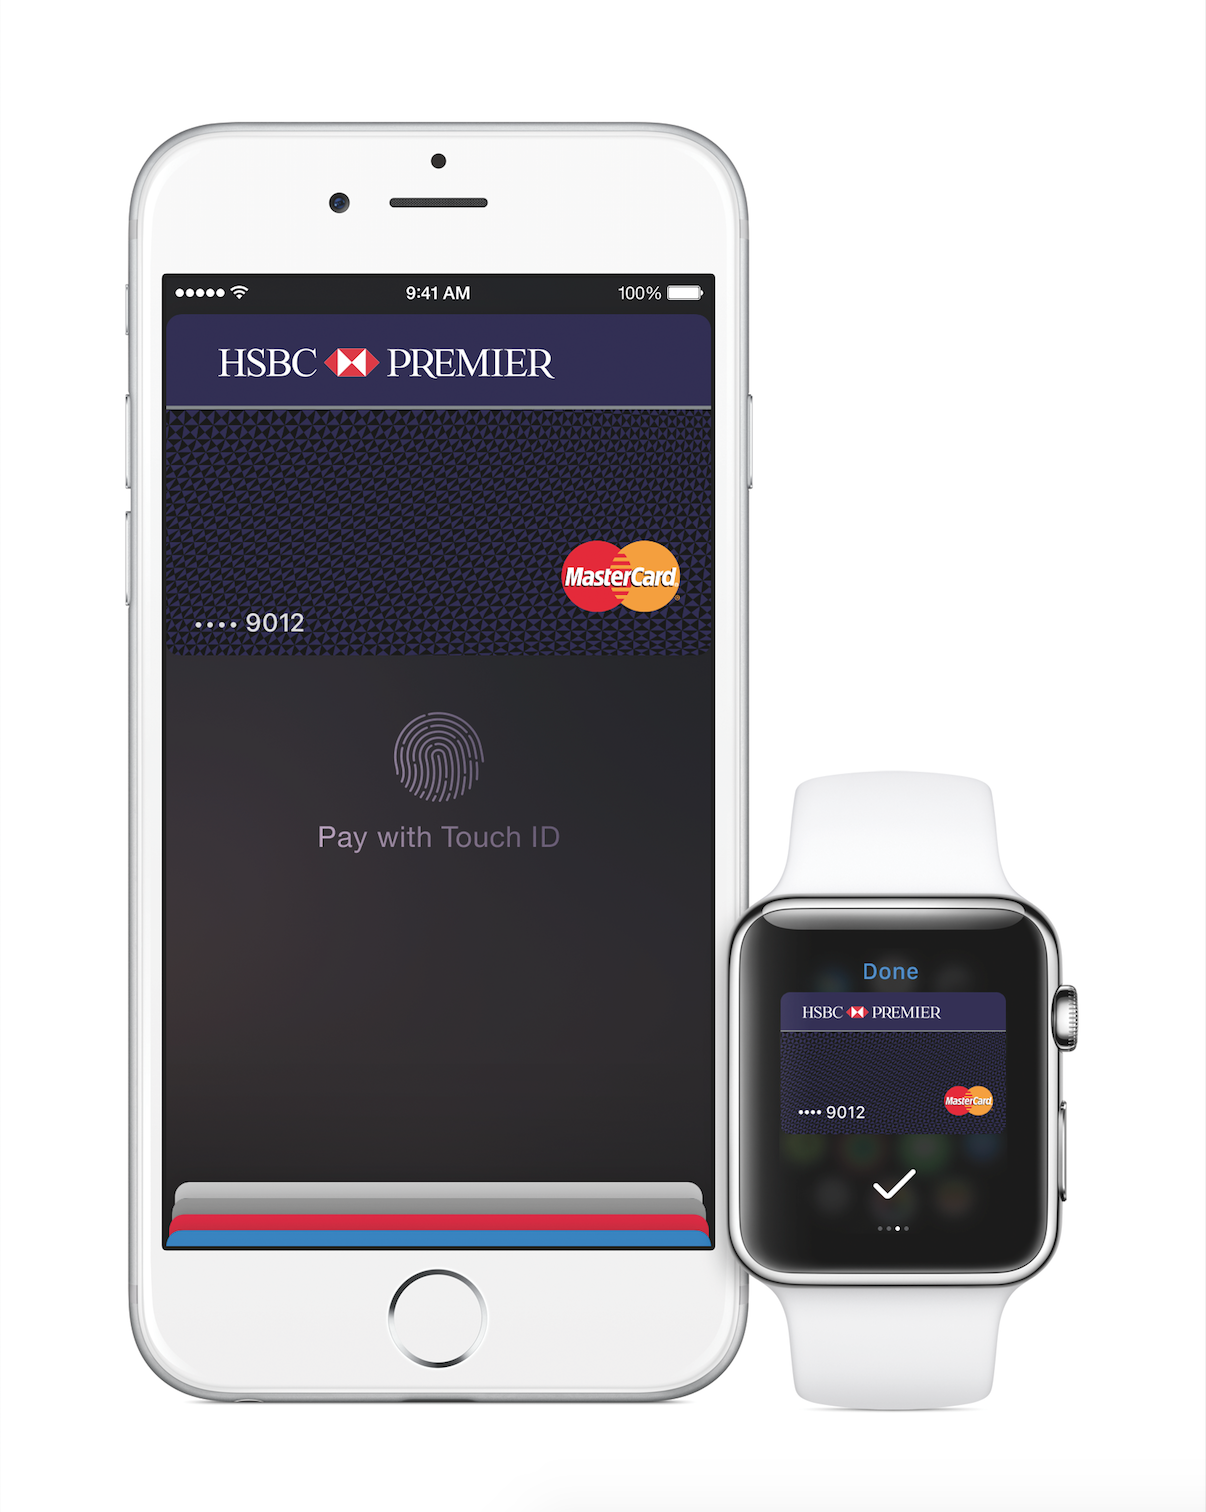 Apple Pay app showing an HSBC MasterCard card